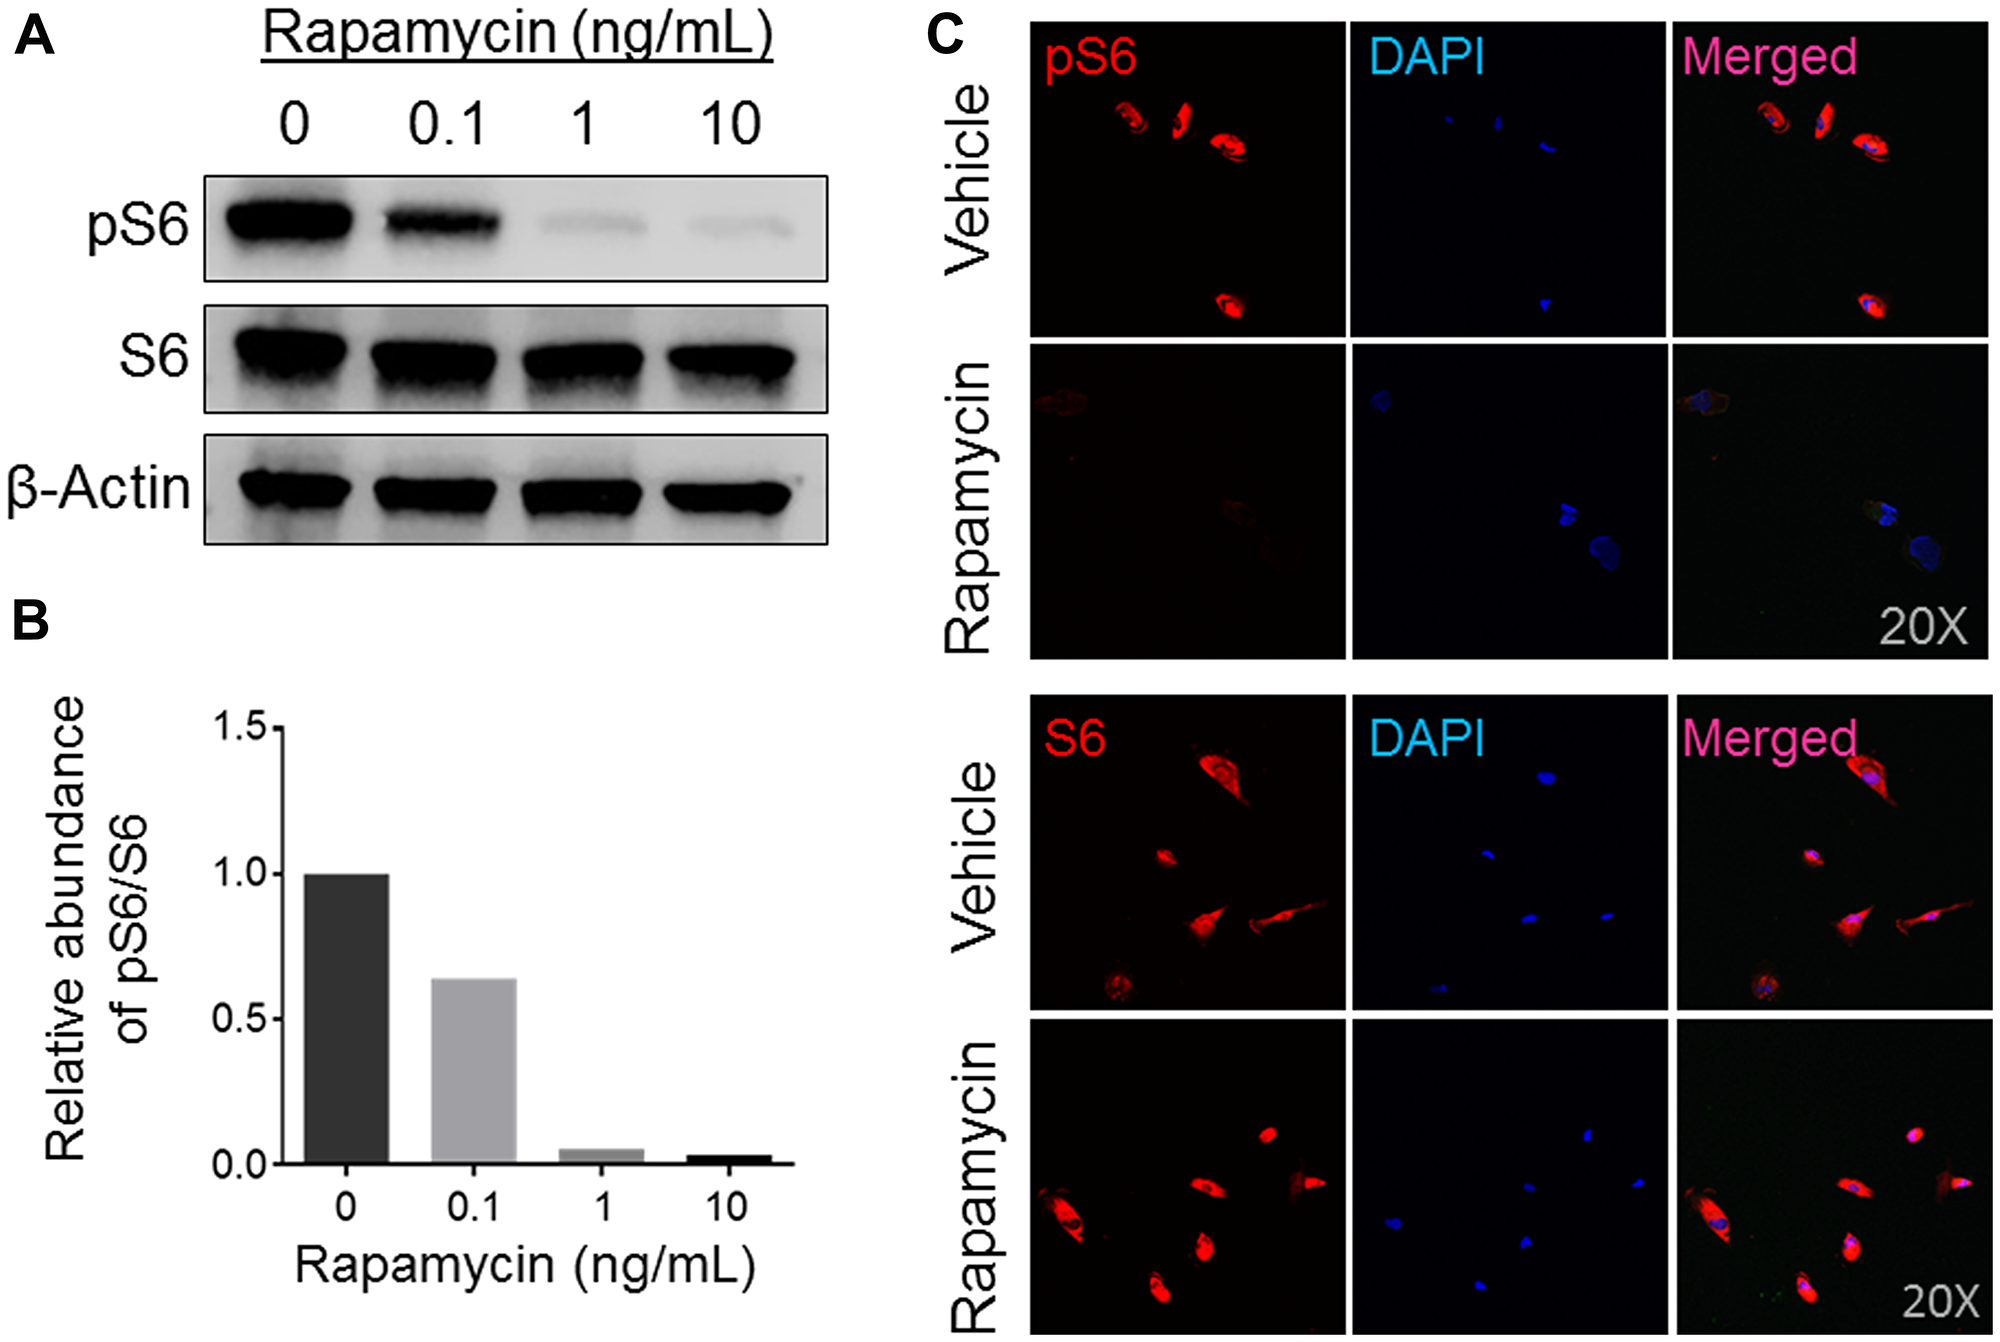 Expression analysis of mTOR activity in rapamycin-treated human osteosarcoma COS-33 cells.